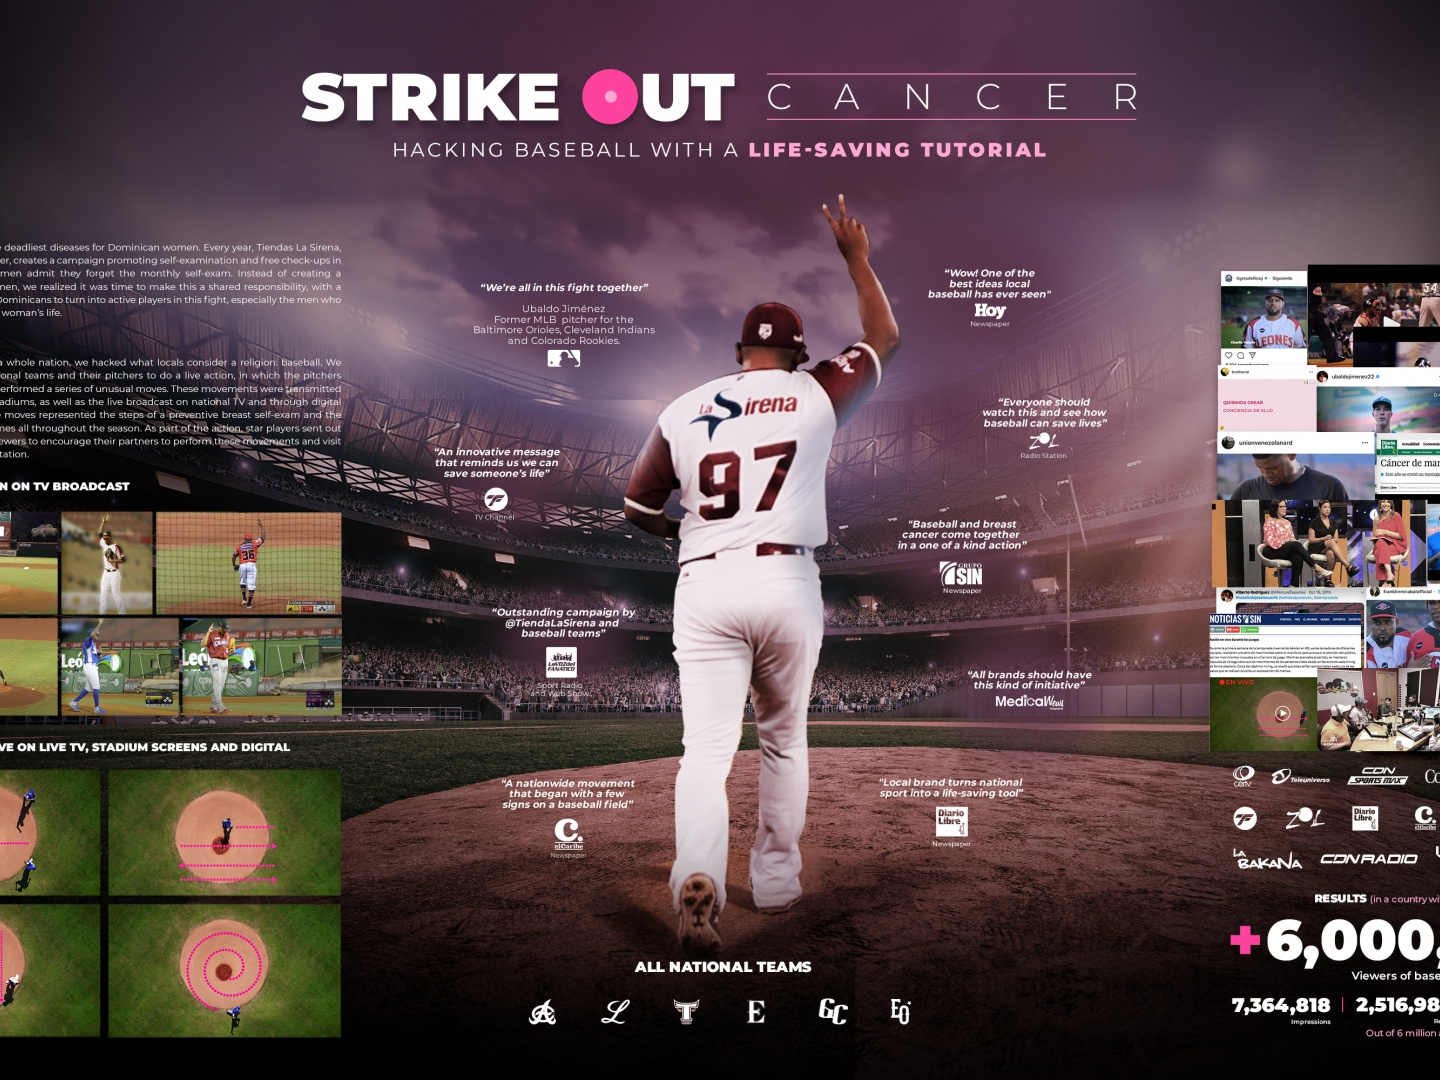 Strikeout Cancer Thumbnail